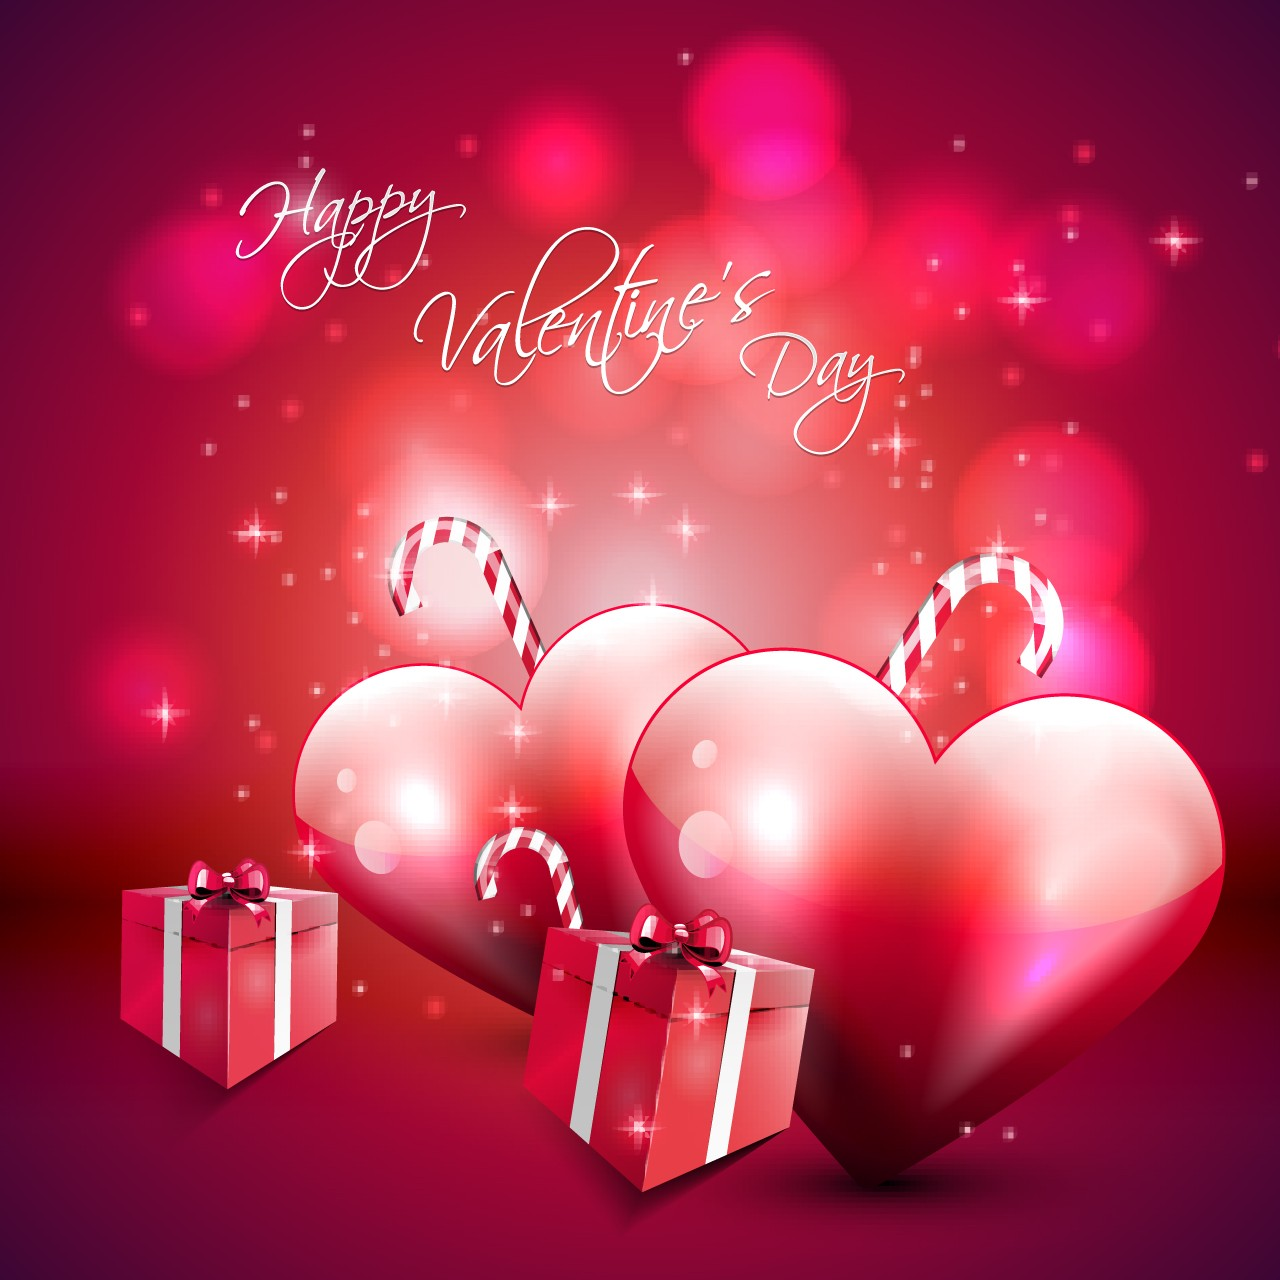 Love Gift Hd Wallpaper : Happy Valentines Day Love Heart Flower Hd Wallpaper